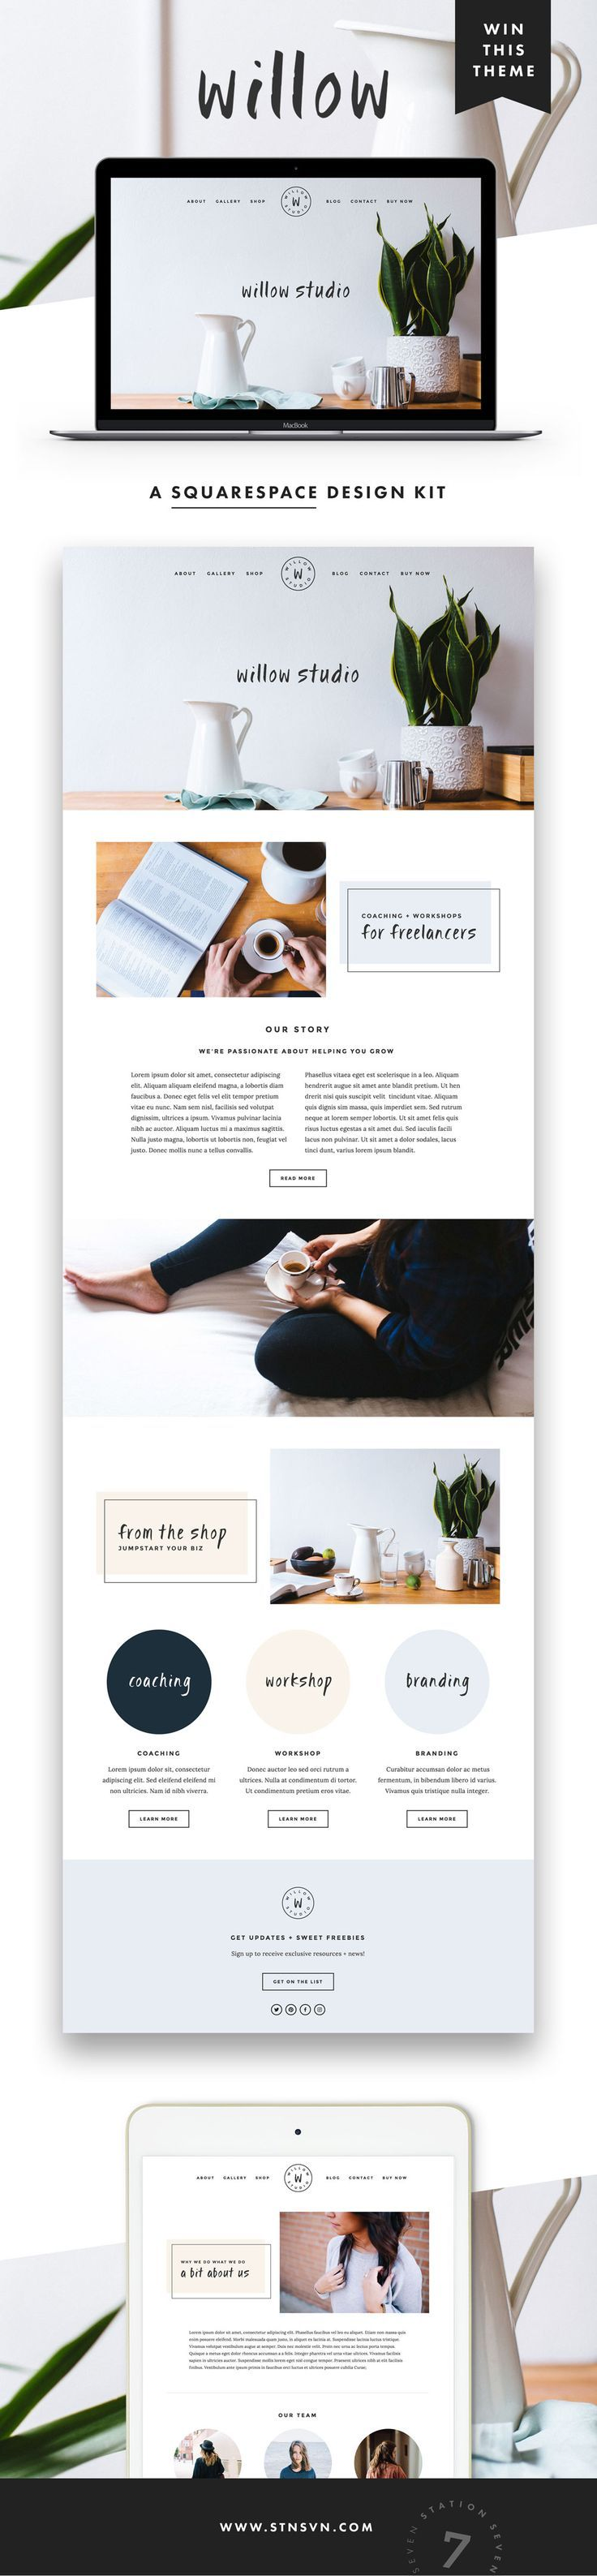 410 best images about branding inspiration on pinterest for Best squarespace template for blog